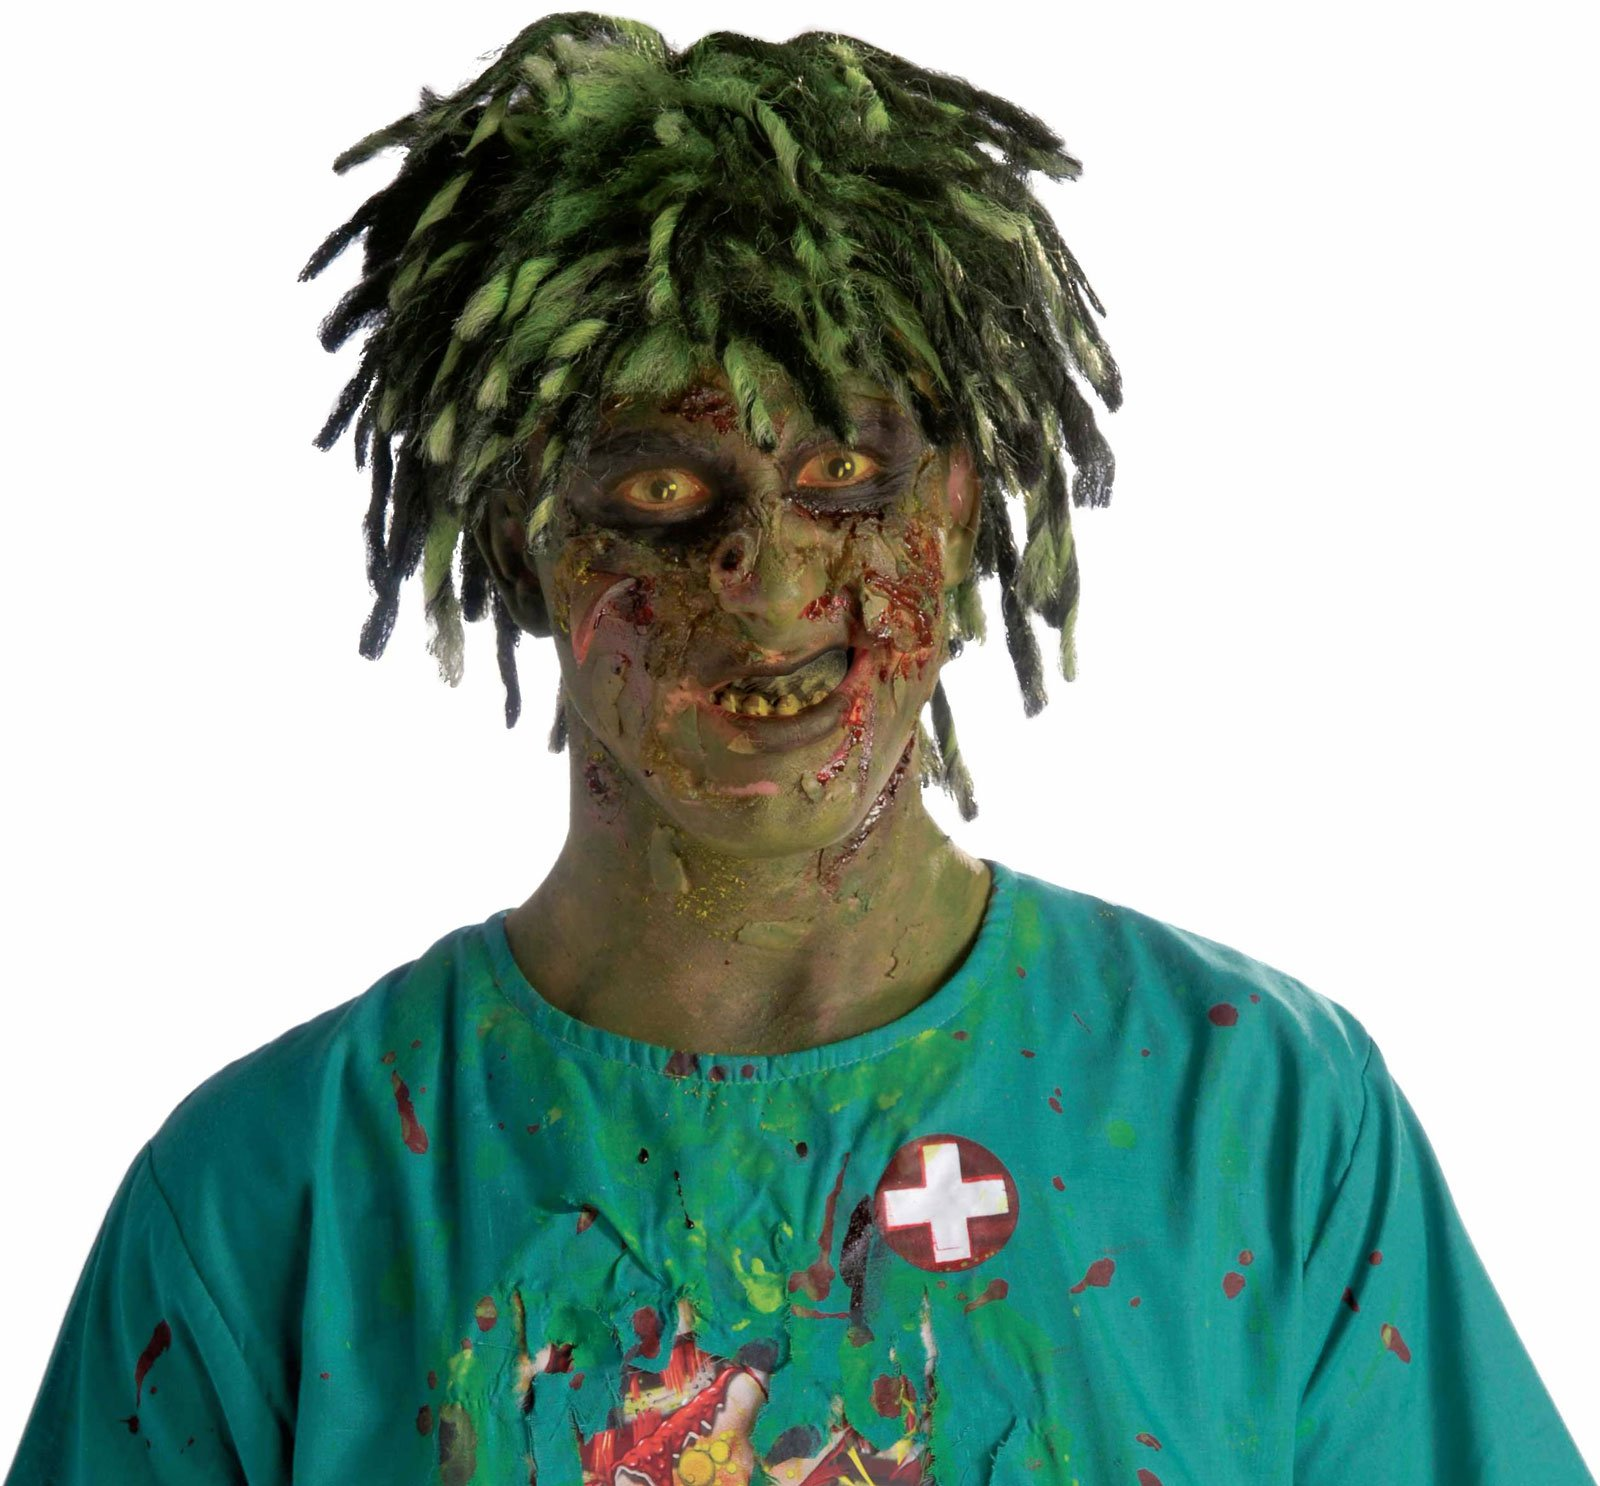 Biohazard Zombie Contaminated Adult Wig - Click Image to Close